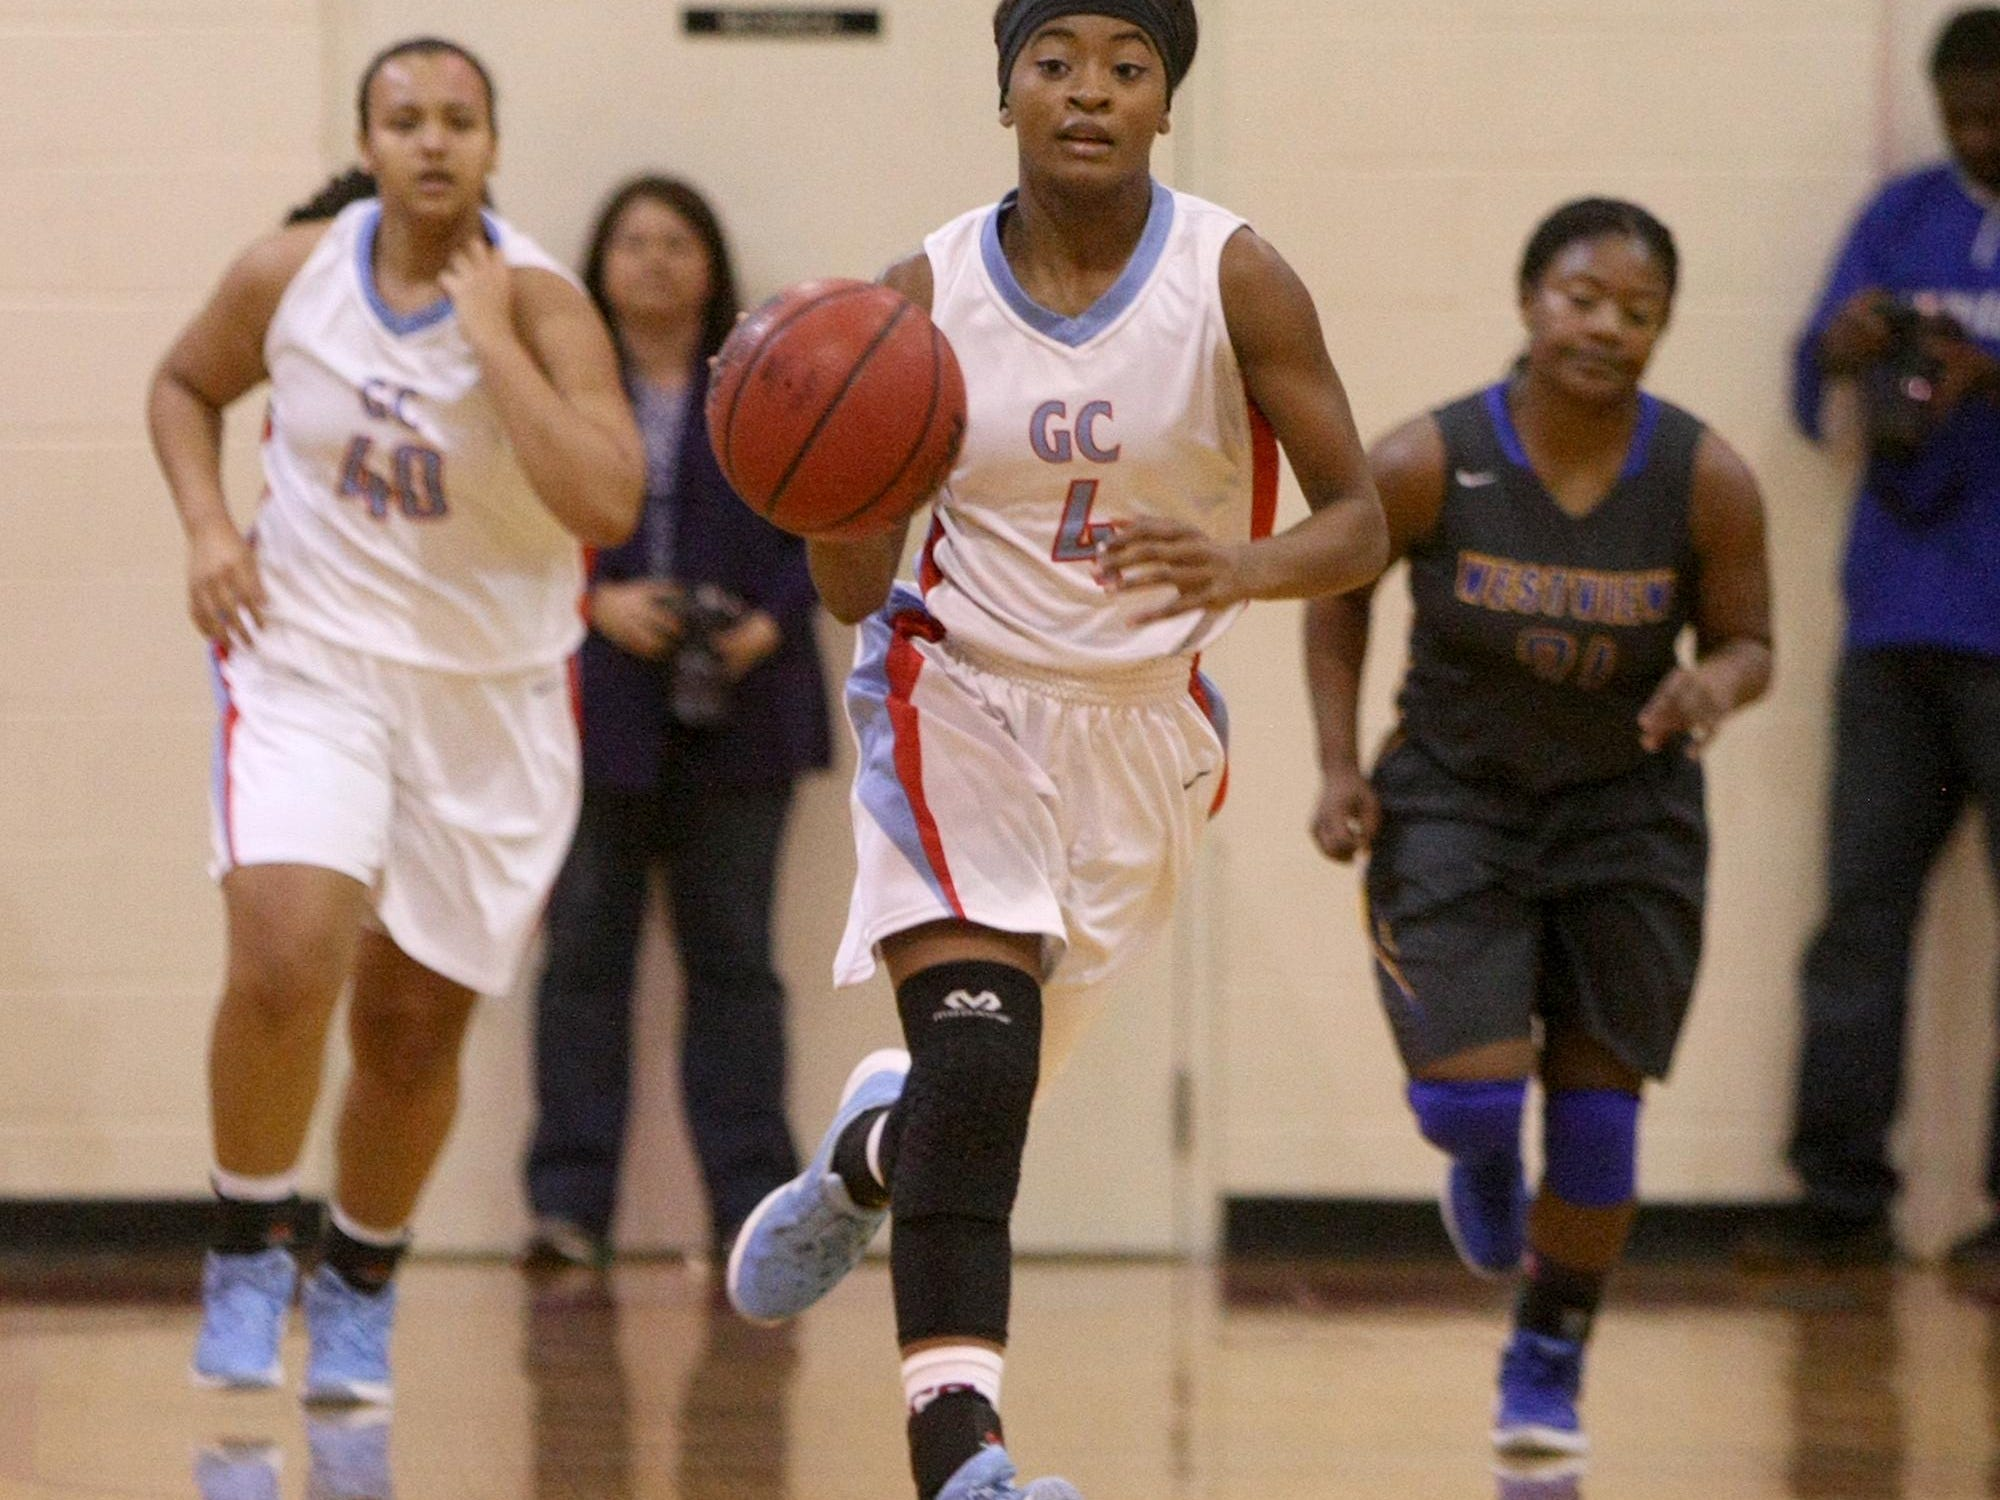 Gibson County's Briana Fields (4) takes the ball down court Saturday against Westview at Bo Booth Gymnasium in Dyer.